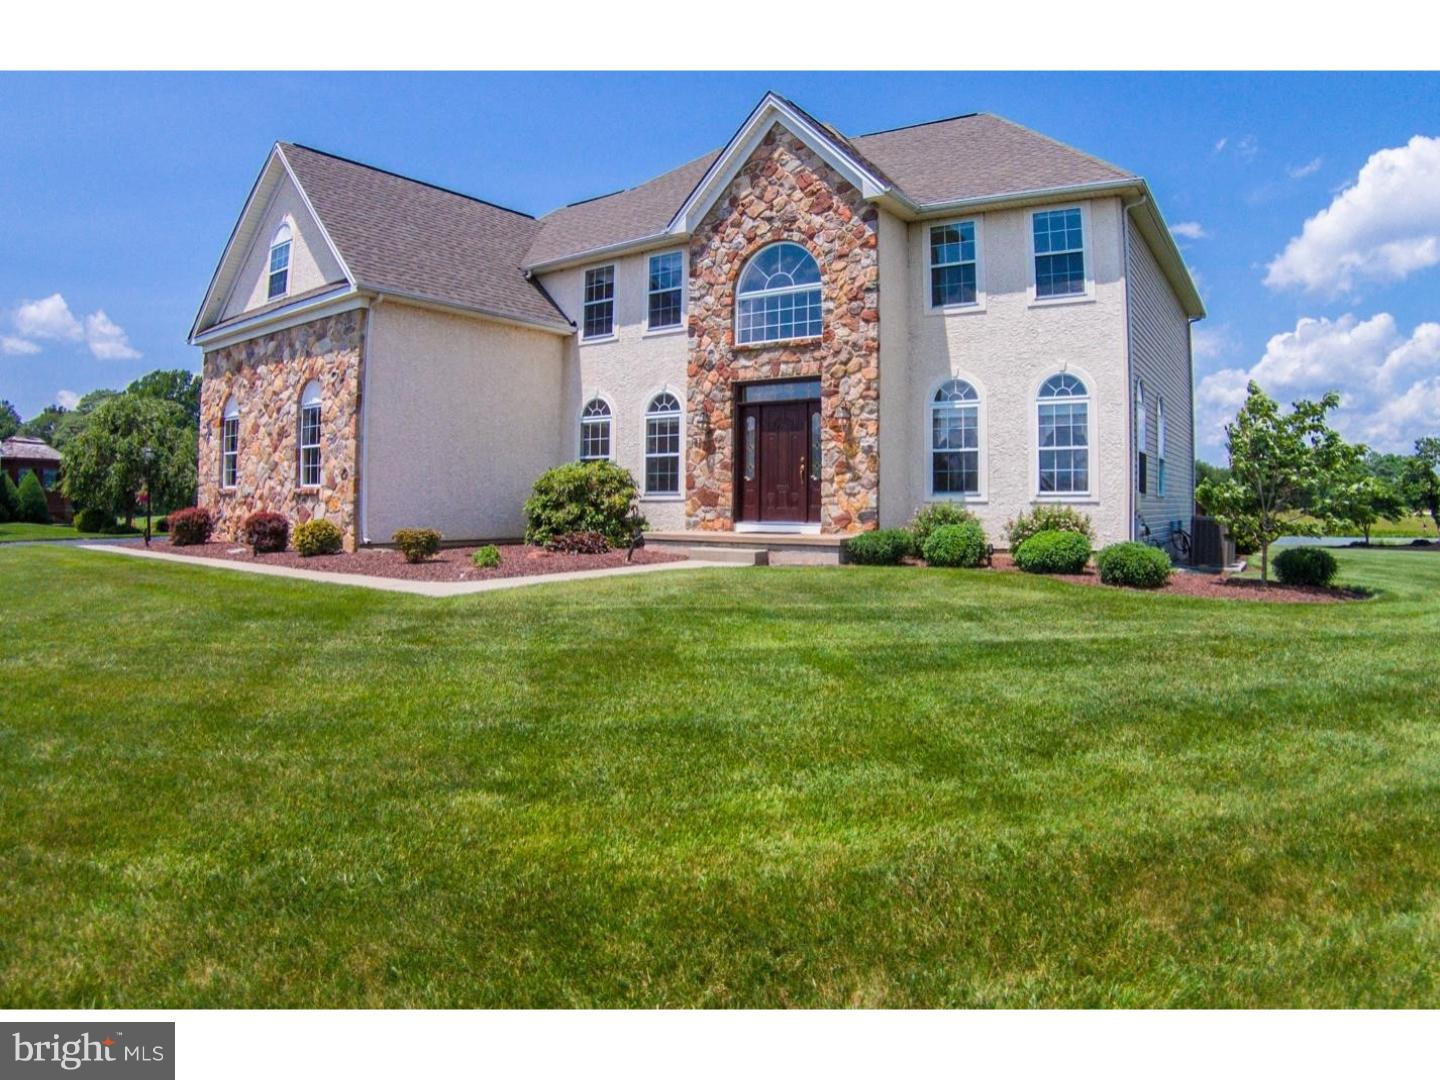 Don't miss the opportunity to view this beautiful home only available due to relocation.  This home